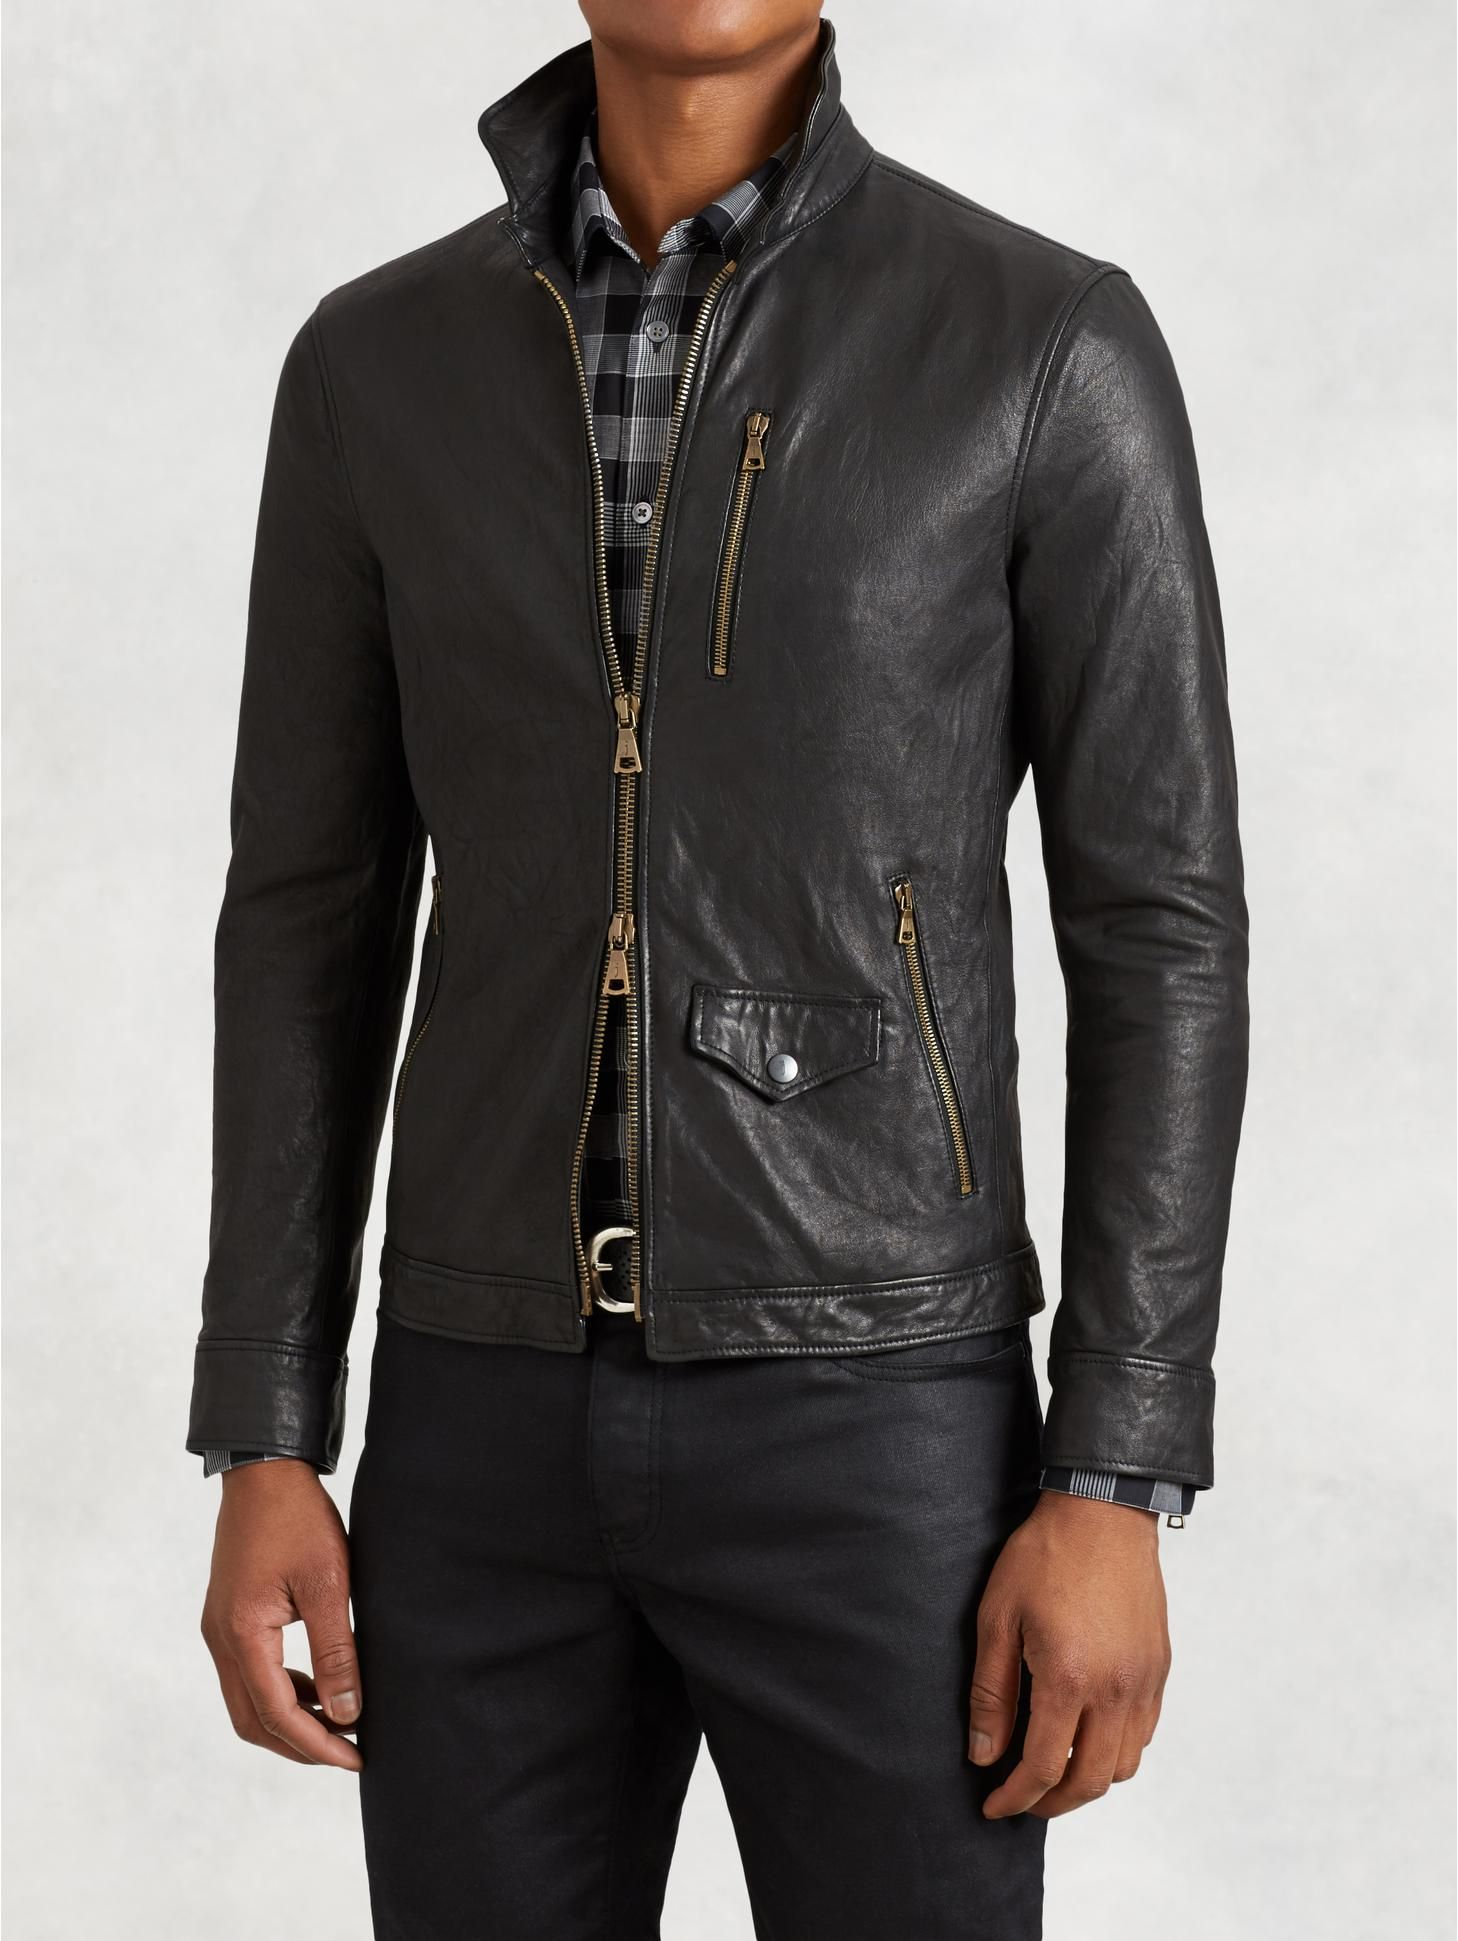 Wire Collar Leather Jacket Leather Jacket Men Leather Jacket Collar Leather Jacket [ 1941 x 1458 Pixel ]